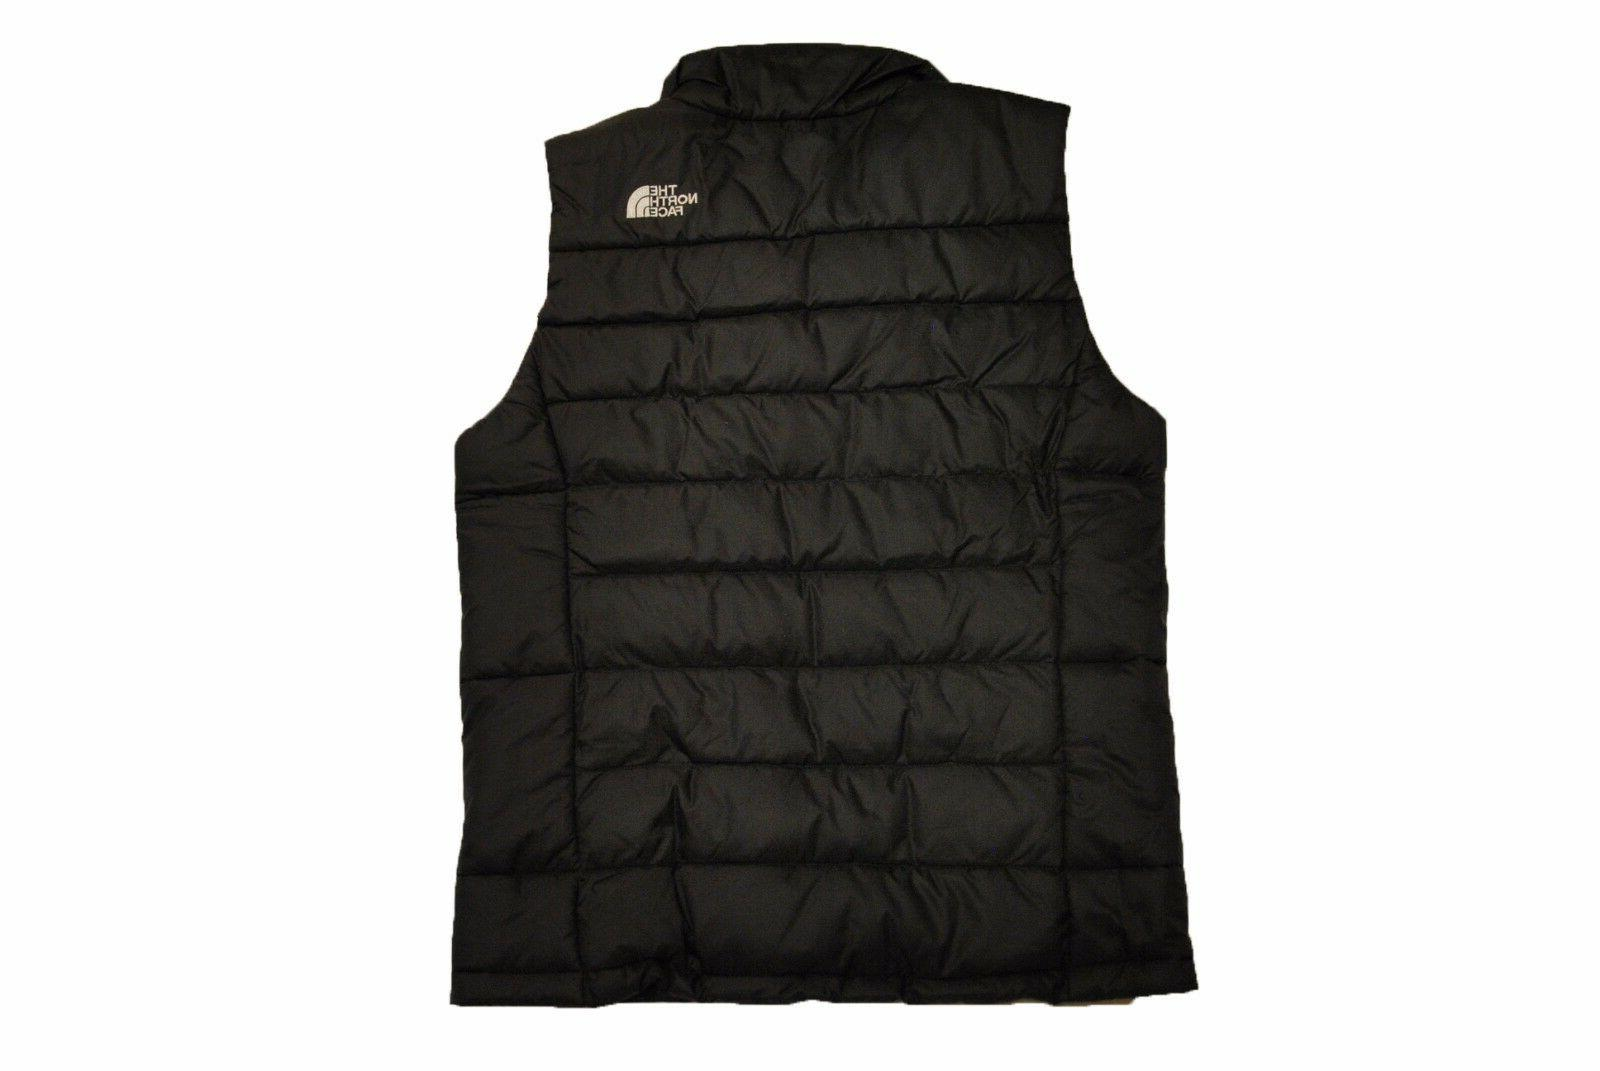 The North Face Aconcagua Vest in TNF Black Sz S-2XL NEW